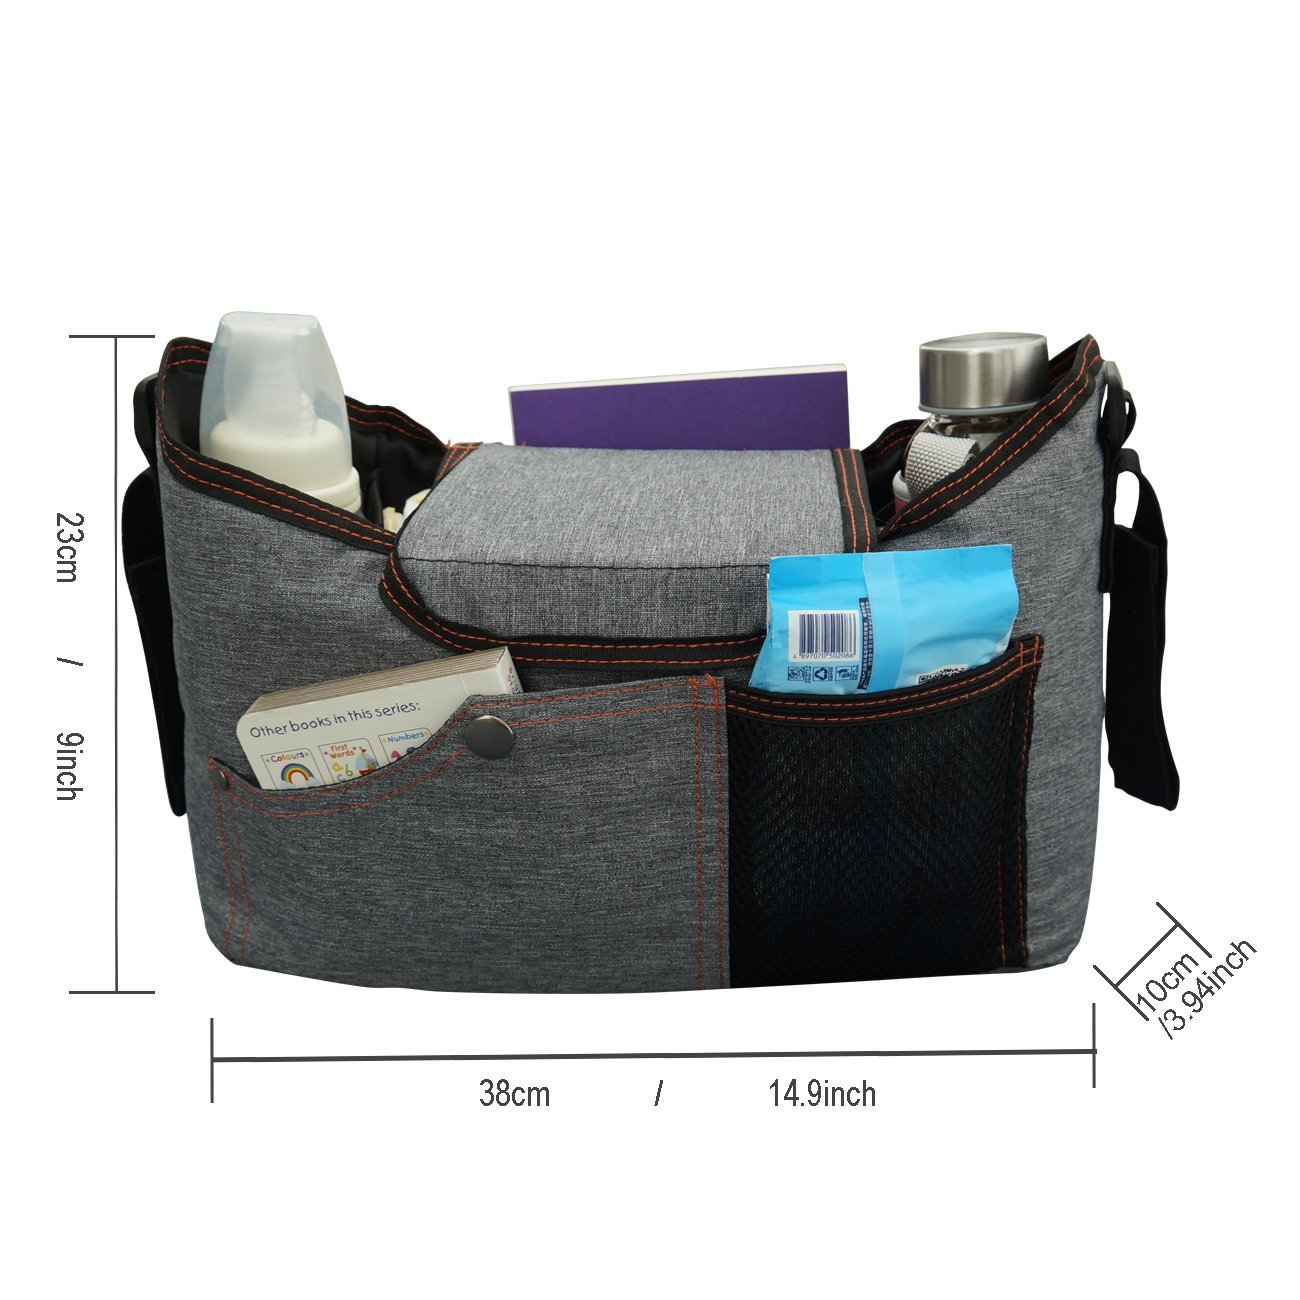 BlueSnail Stroller Bag Fits Stroller Organizer - Extra-Large Storage Space for iPhones, Wallets, Diapers, Books, Toys, iPads (Grey) by BlueSnail (Image #4)